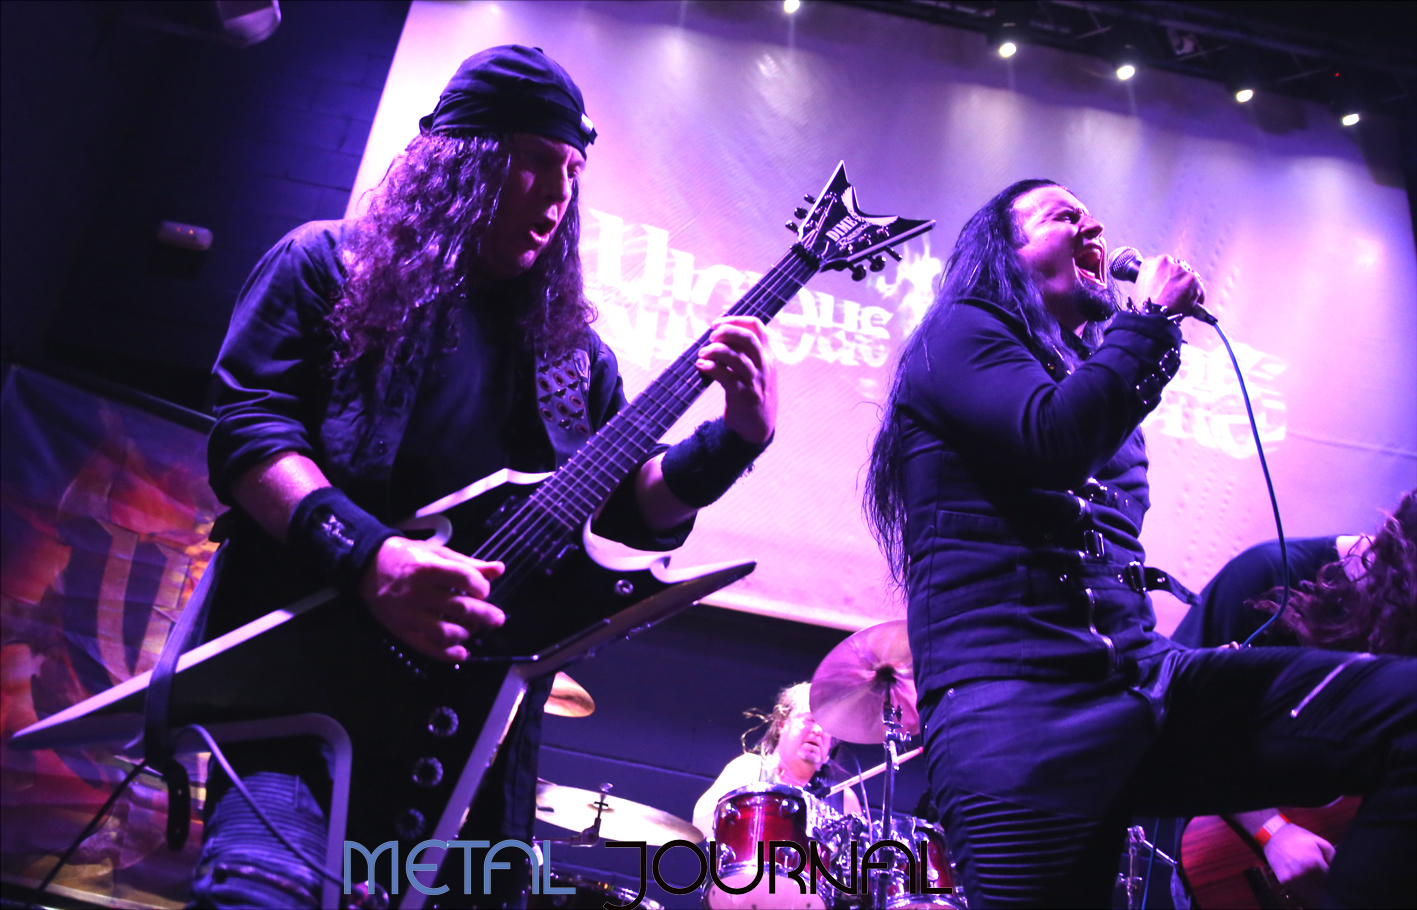 vicious rumors - metal journal irun pic 10